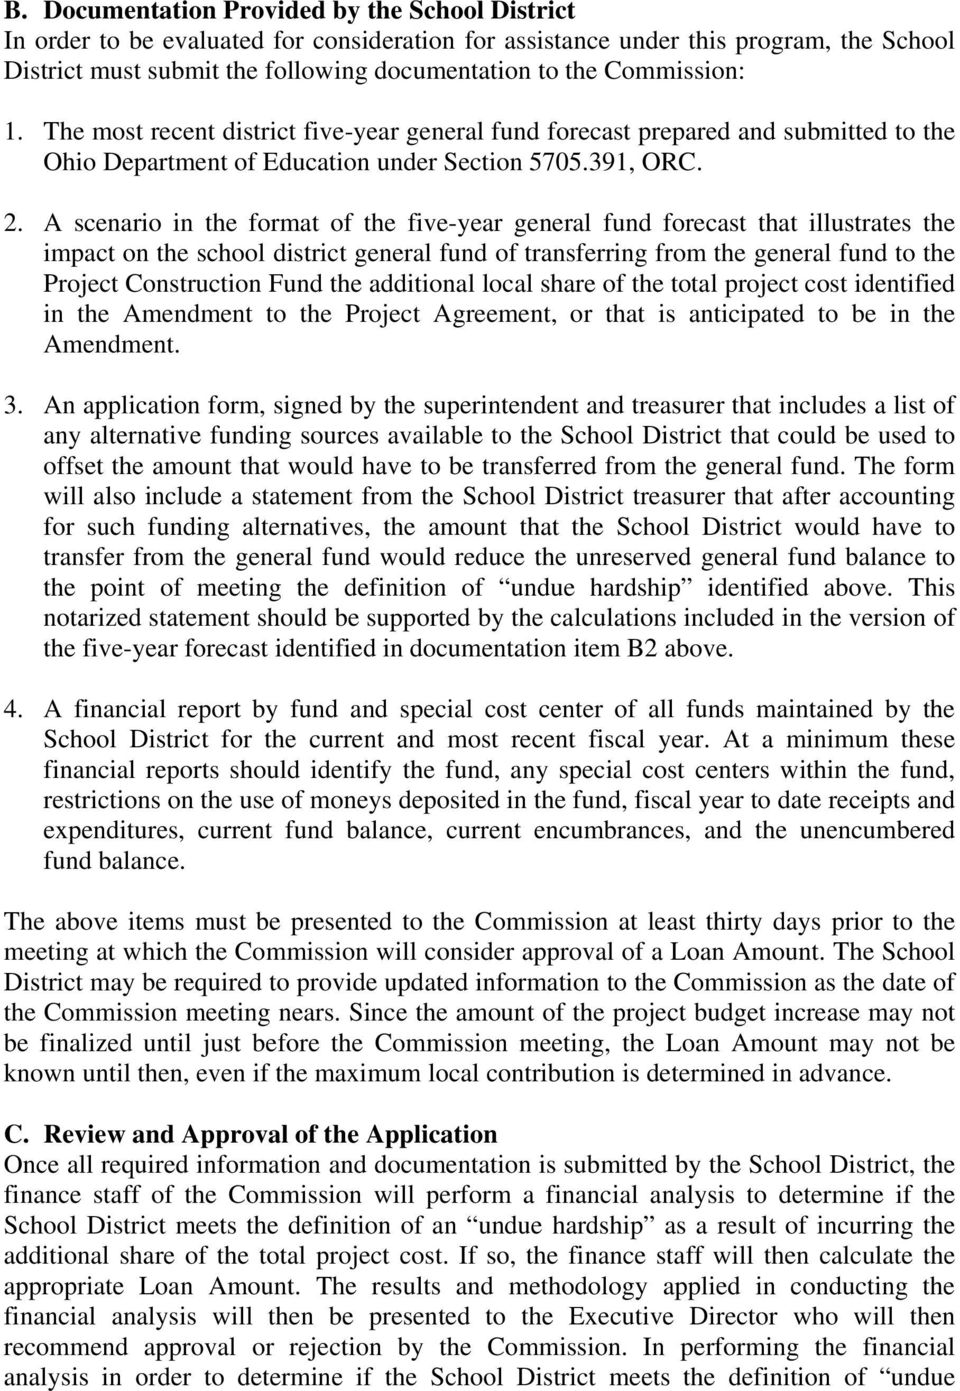 A scenario in the format of the five-year general fund forecast that illustrates the impact on the school district general fund of transferring from the general fund to the Project Construction Fund